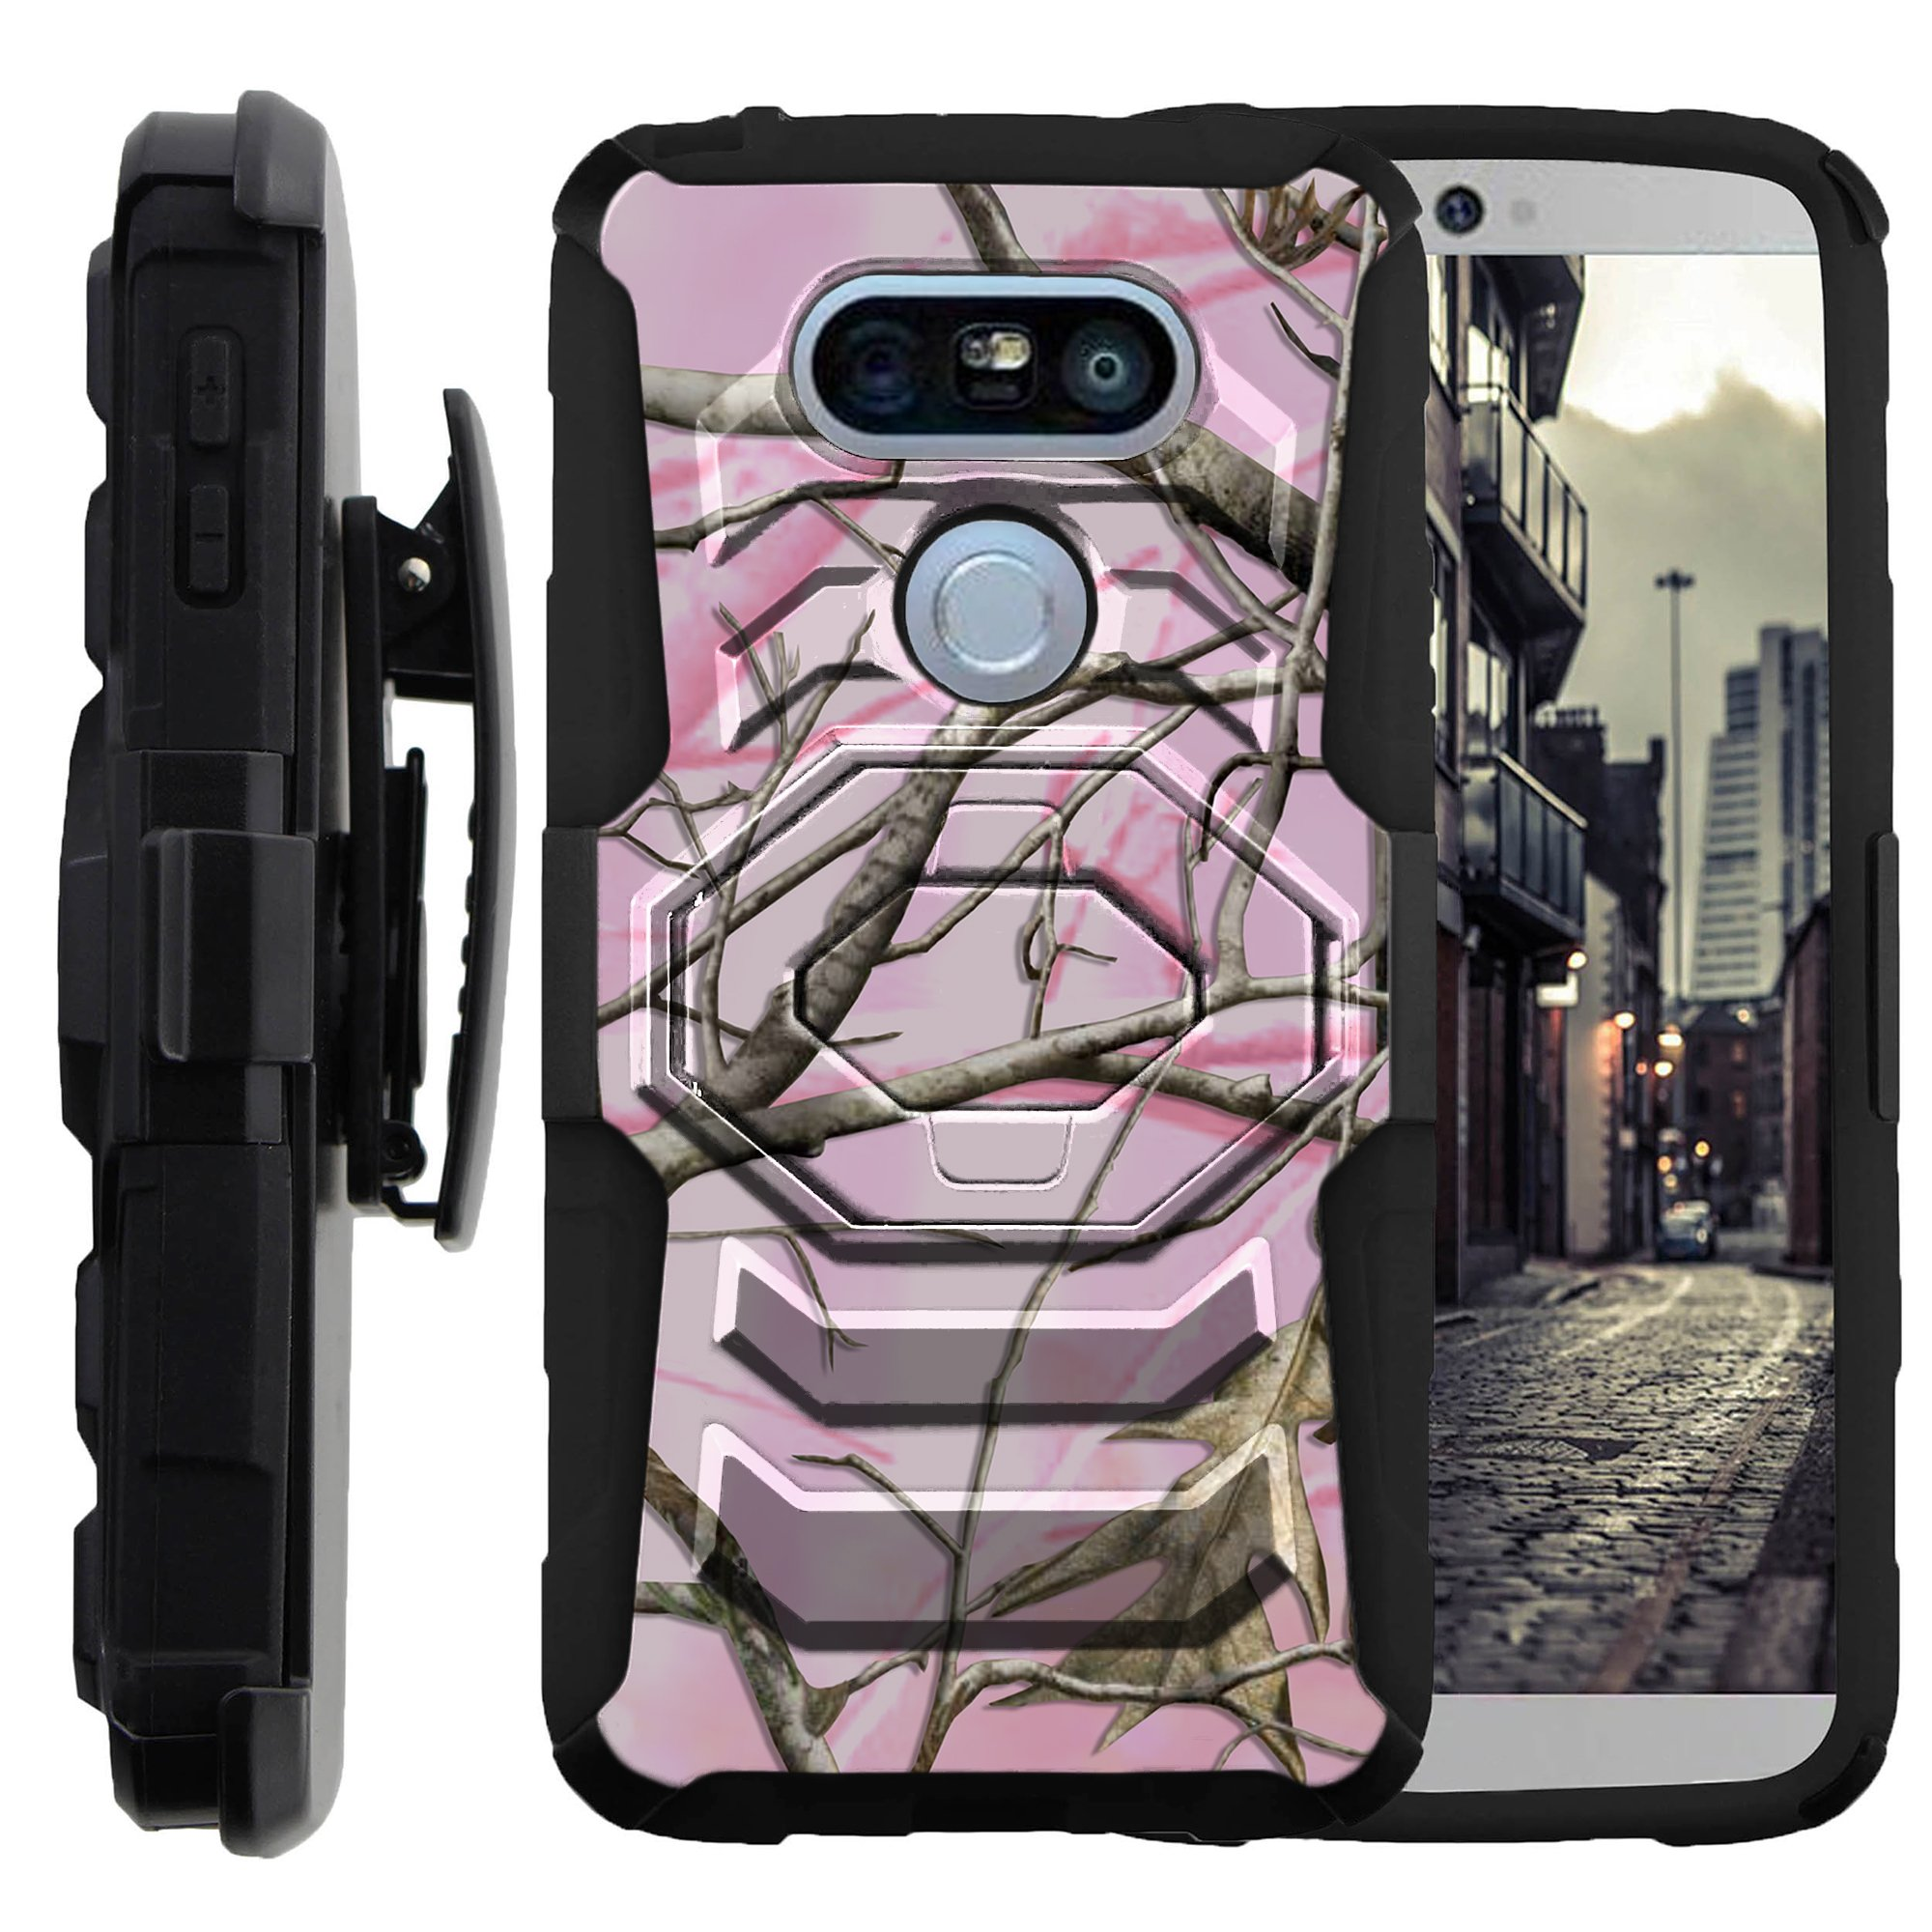 Case for LG G5 | LG G5 Case | G5 Holster Case [Armor Reloaded] Heavy Duty case with Kickstand + Bonus Belt Clip - Pink Hunters Camouflage